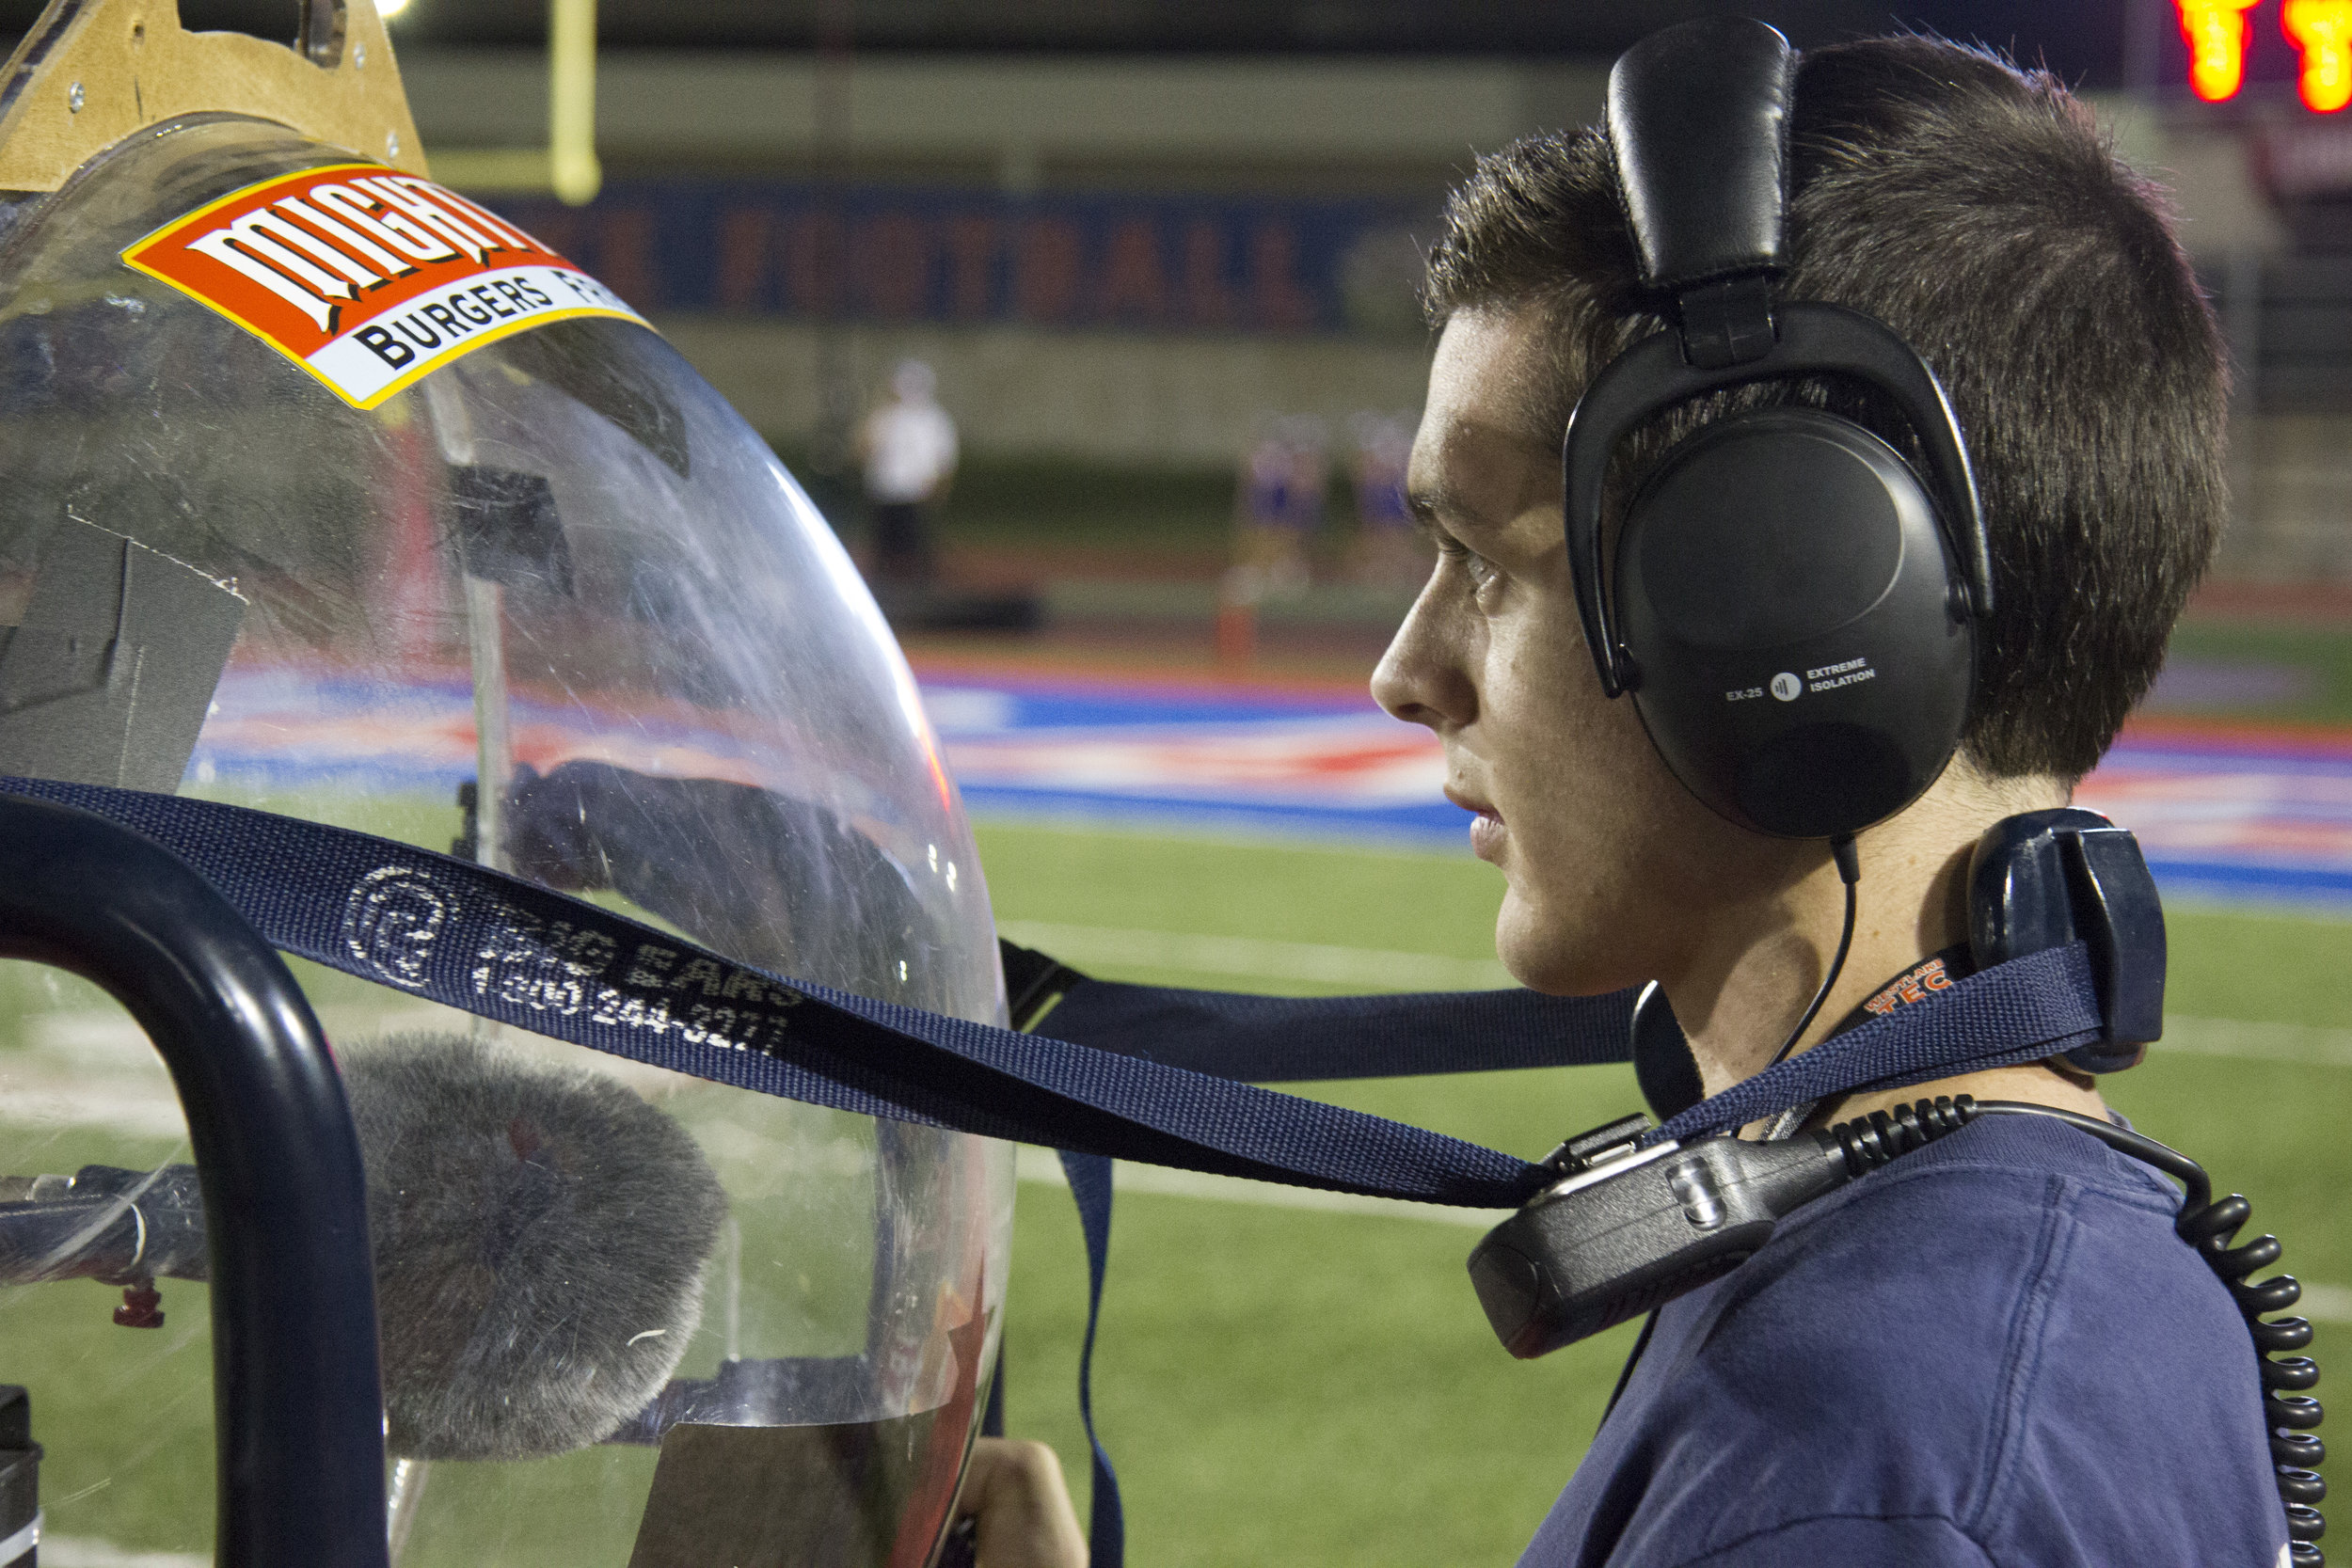 Kyle Hoover Operating Parabolic Microphone b.jpg